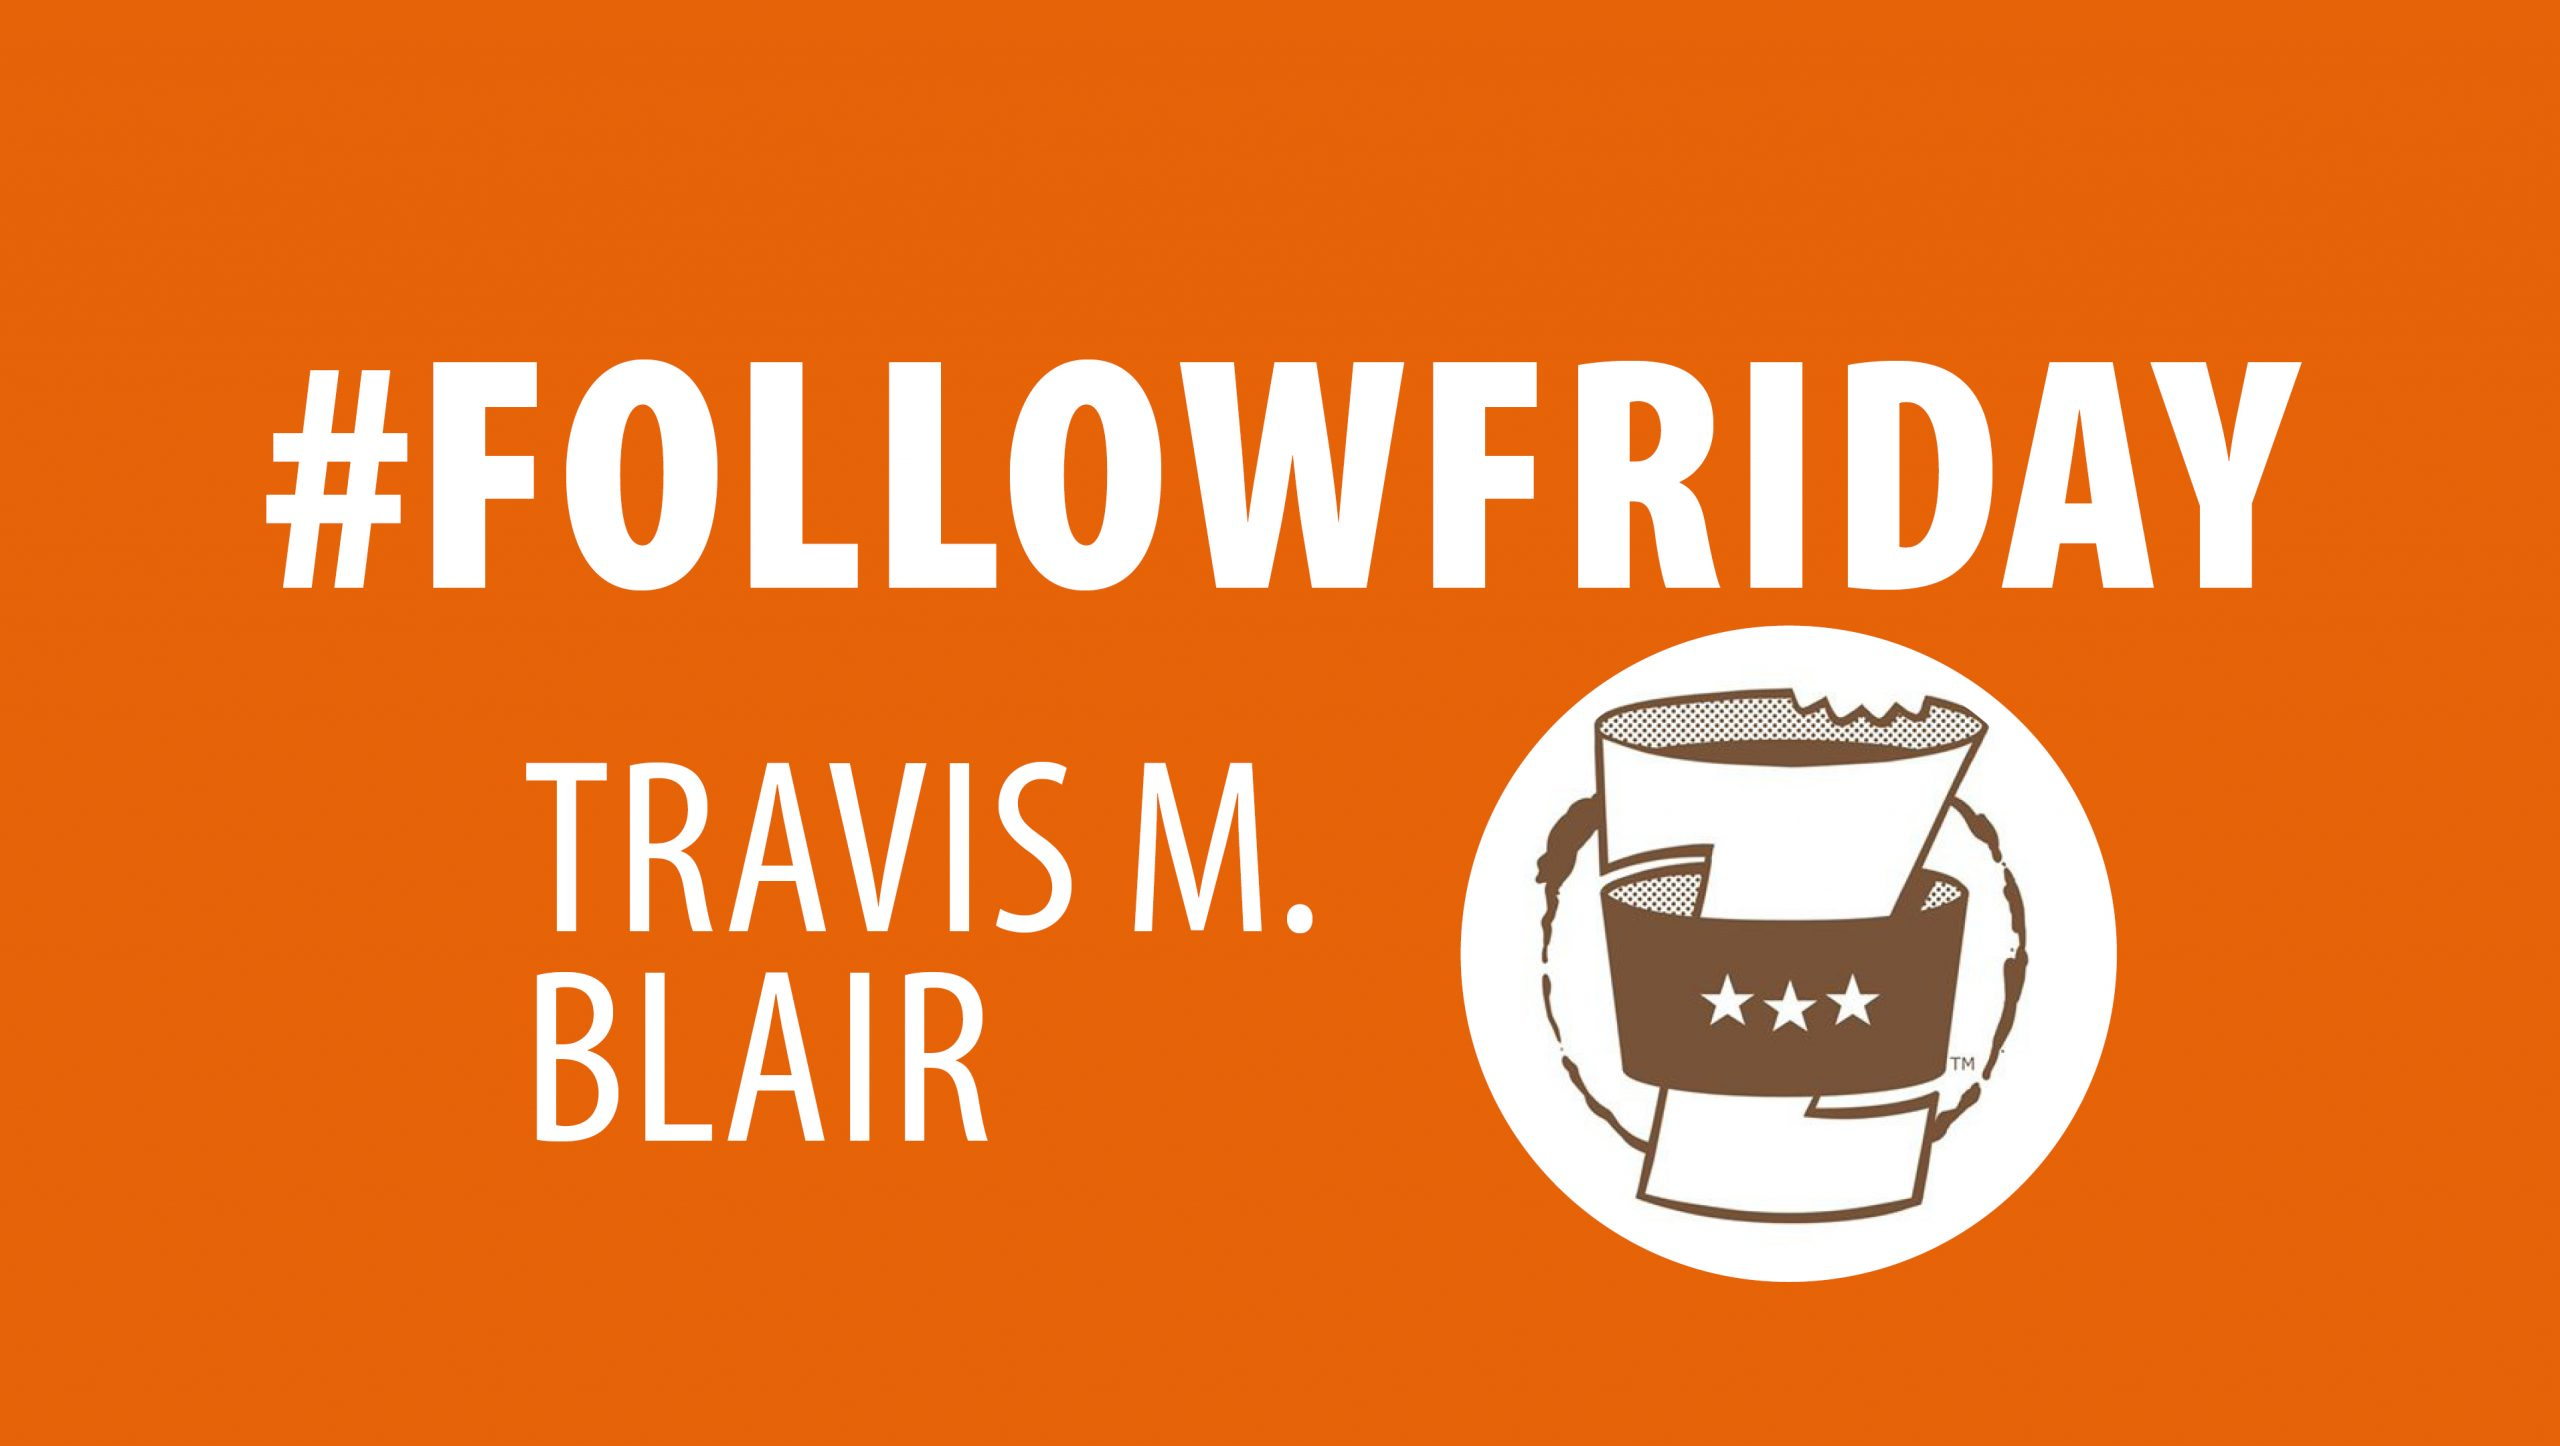 Follow Friday: Travis M. Blair